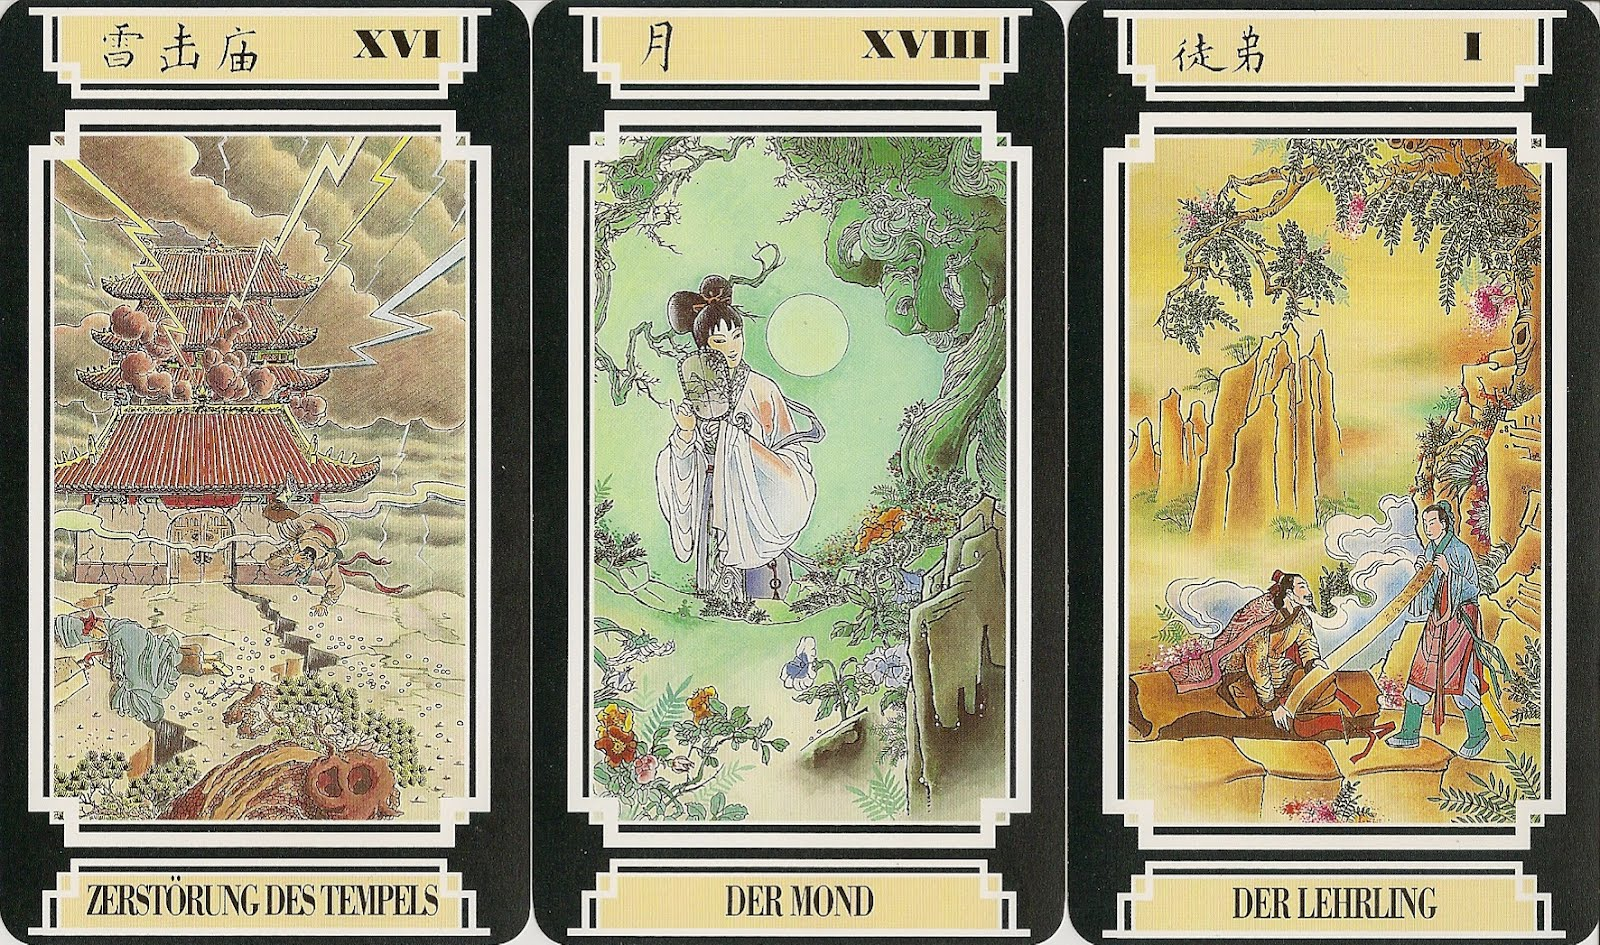 Tarot Card Meanings List - 78 Cards By Suit Element and Zodiac Labyrinthos